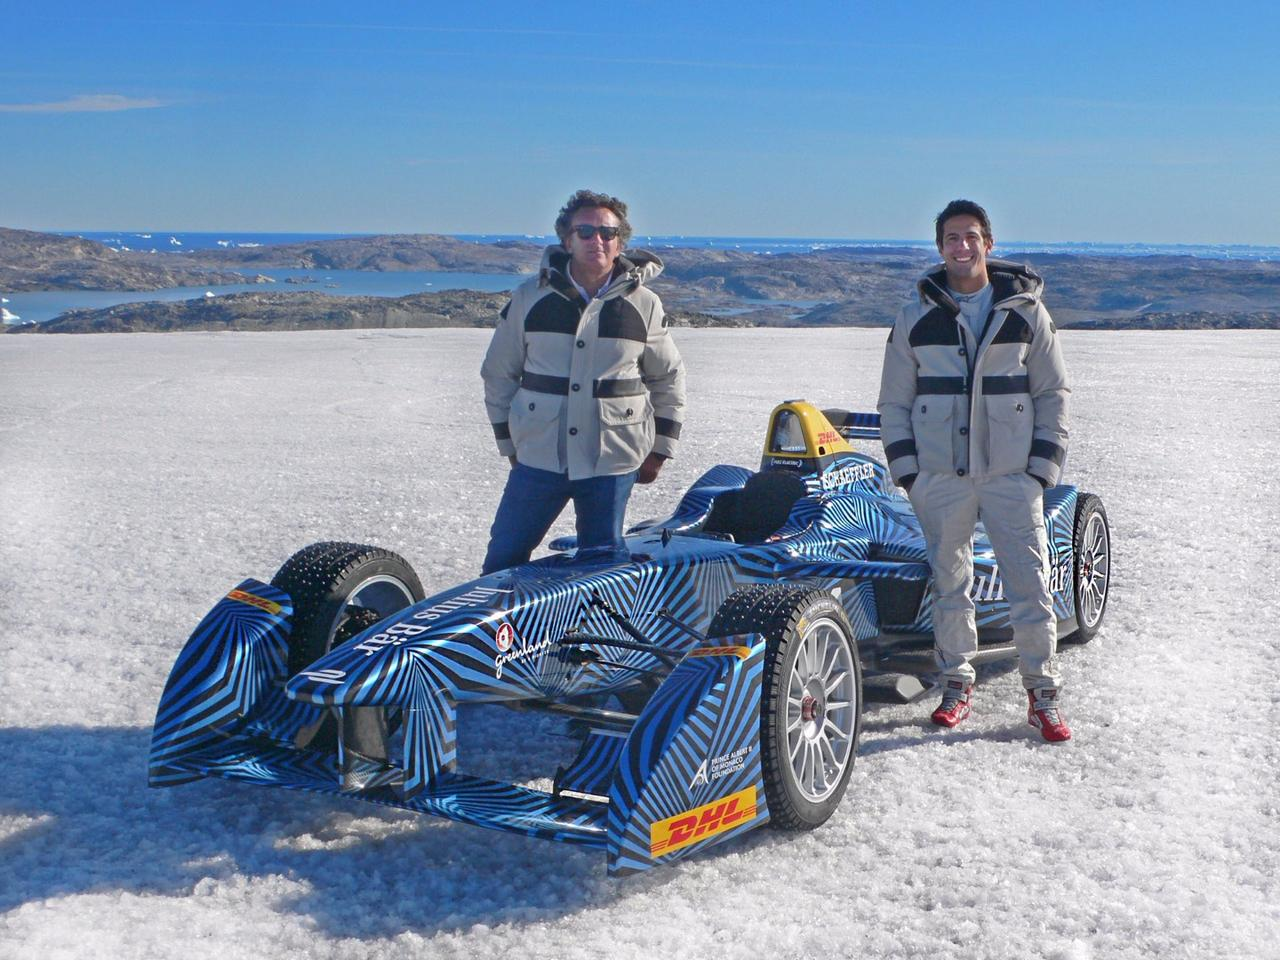 Lucas Di Grassi and Alejandro Agag on the ice cap